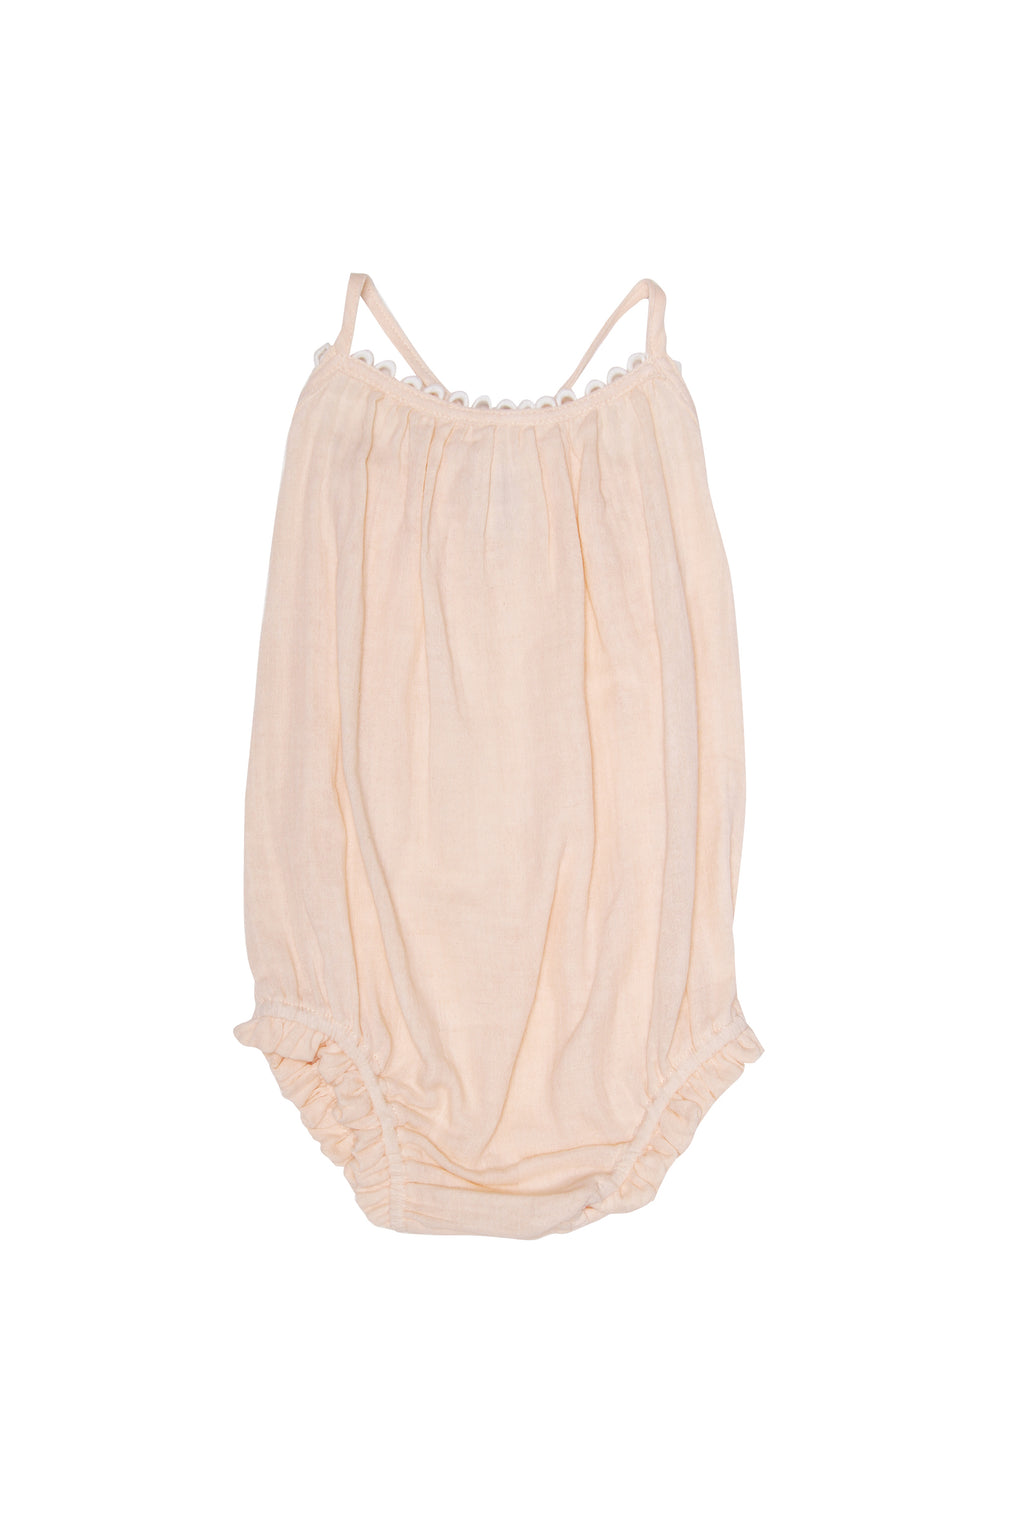 Alex and Ant Alba Playsuit Pink